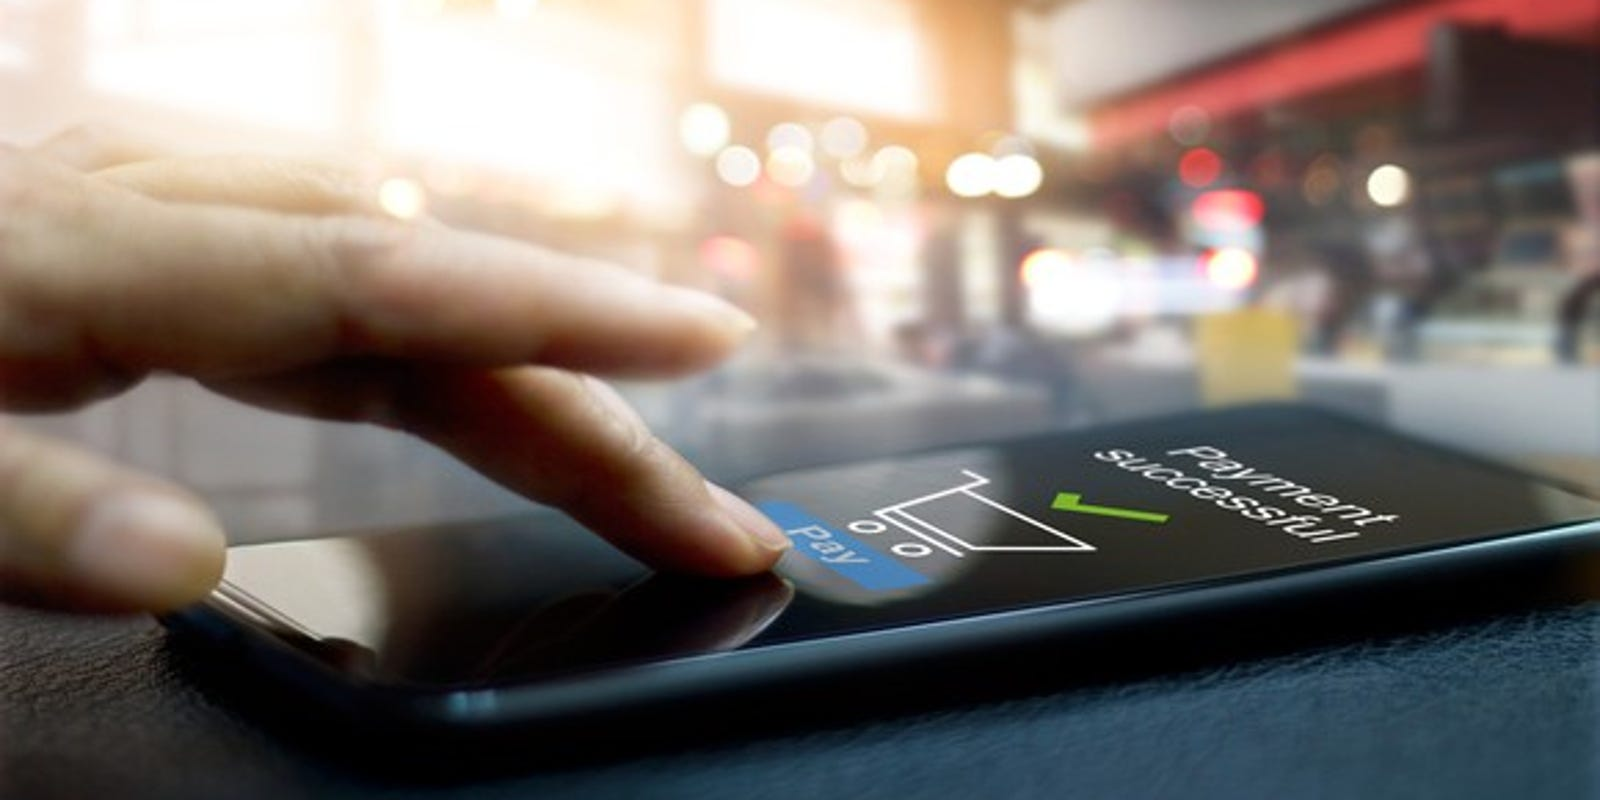 PayPal COO: Cashless platforms can triple growth of a small business